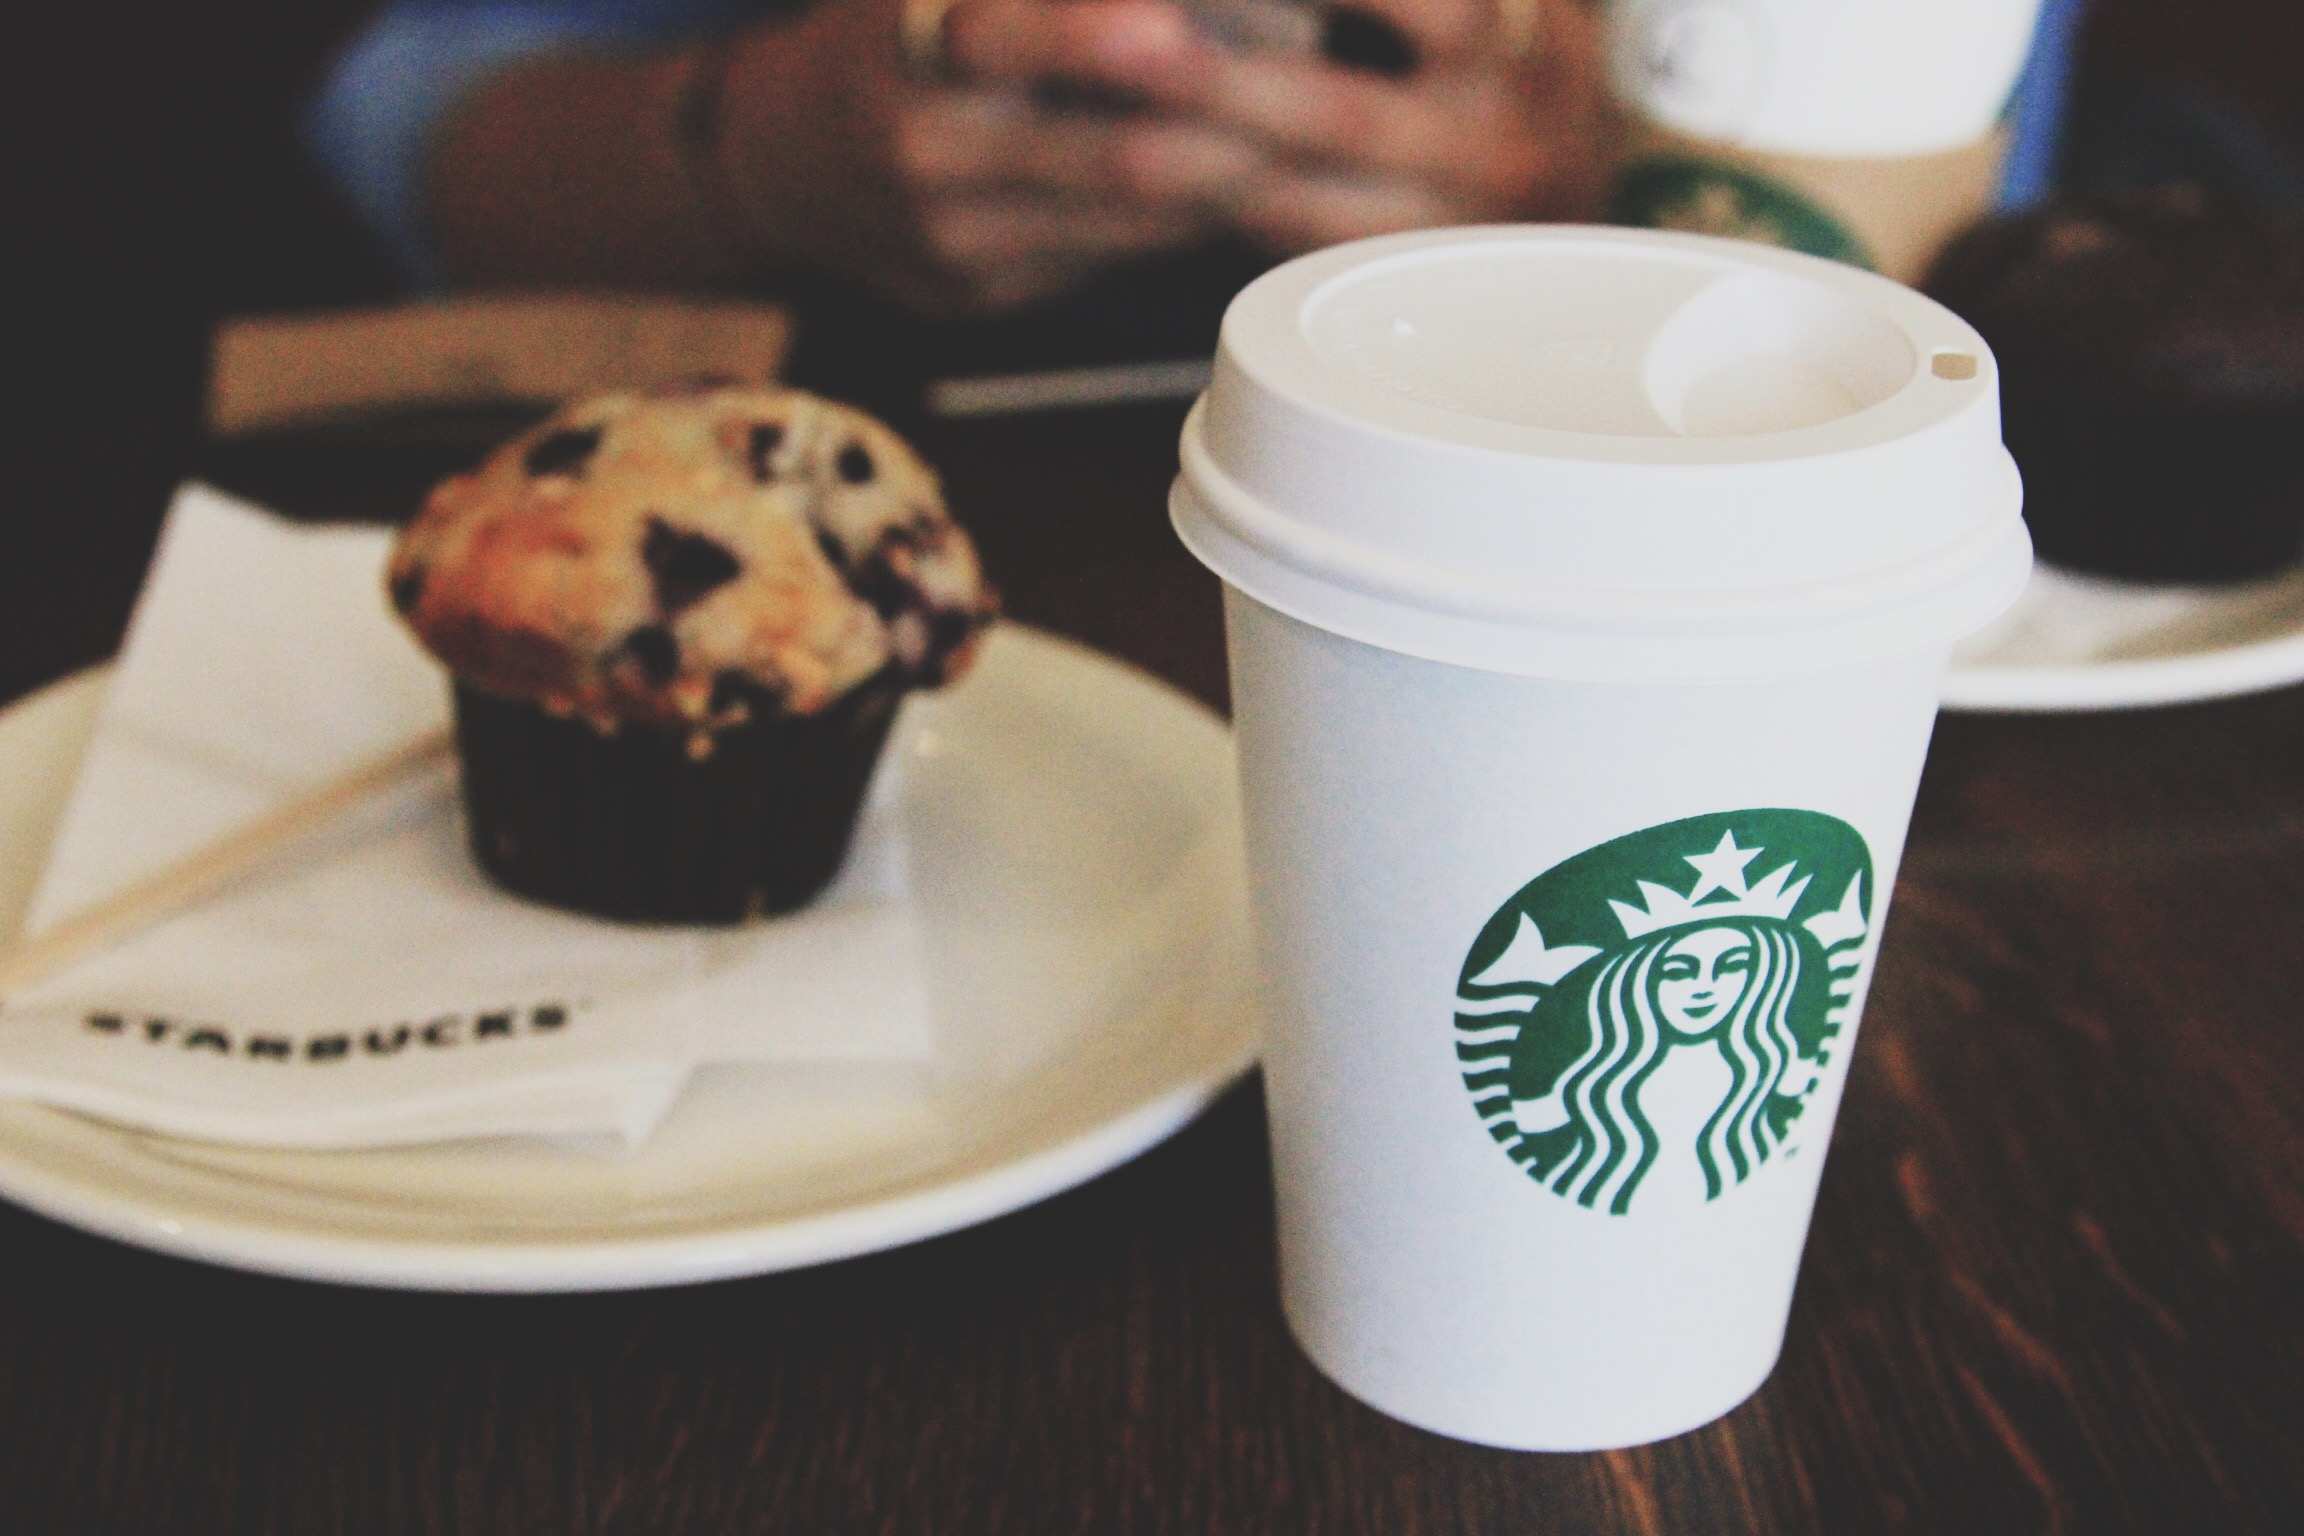 starbucks-breakfast-holborn-londres.jpg